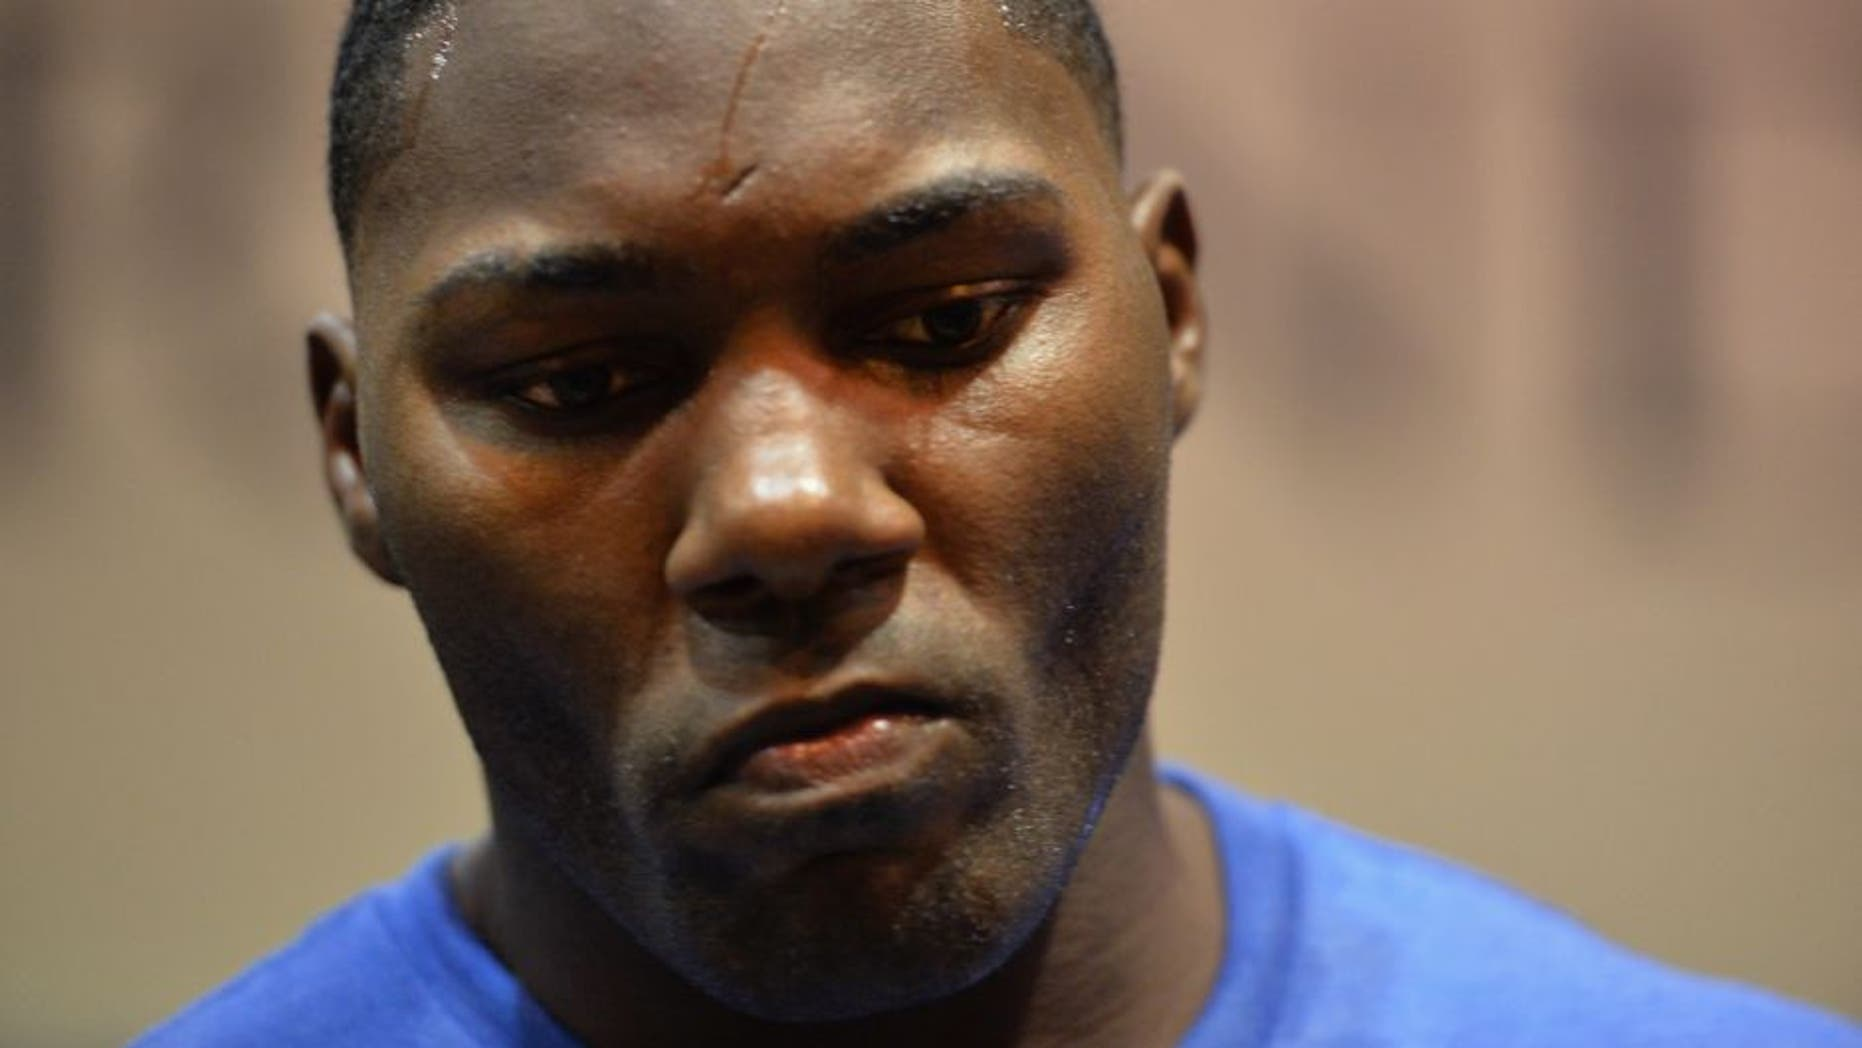 LAS VEGAS, NV - MAY 23: Anthony Johnson backstage during the UFC 187 event at the MGM Grand Garden Arena on May 23, 2015 in Las Vegas, Nevada. (Photo by Mike Roach/Zuffa LLC/Zuffa LLC via Getty Images)